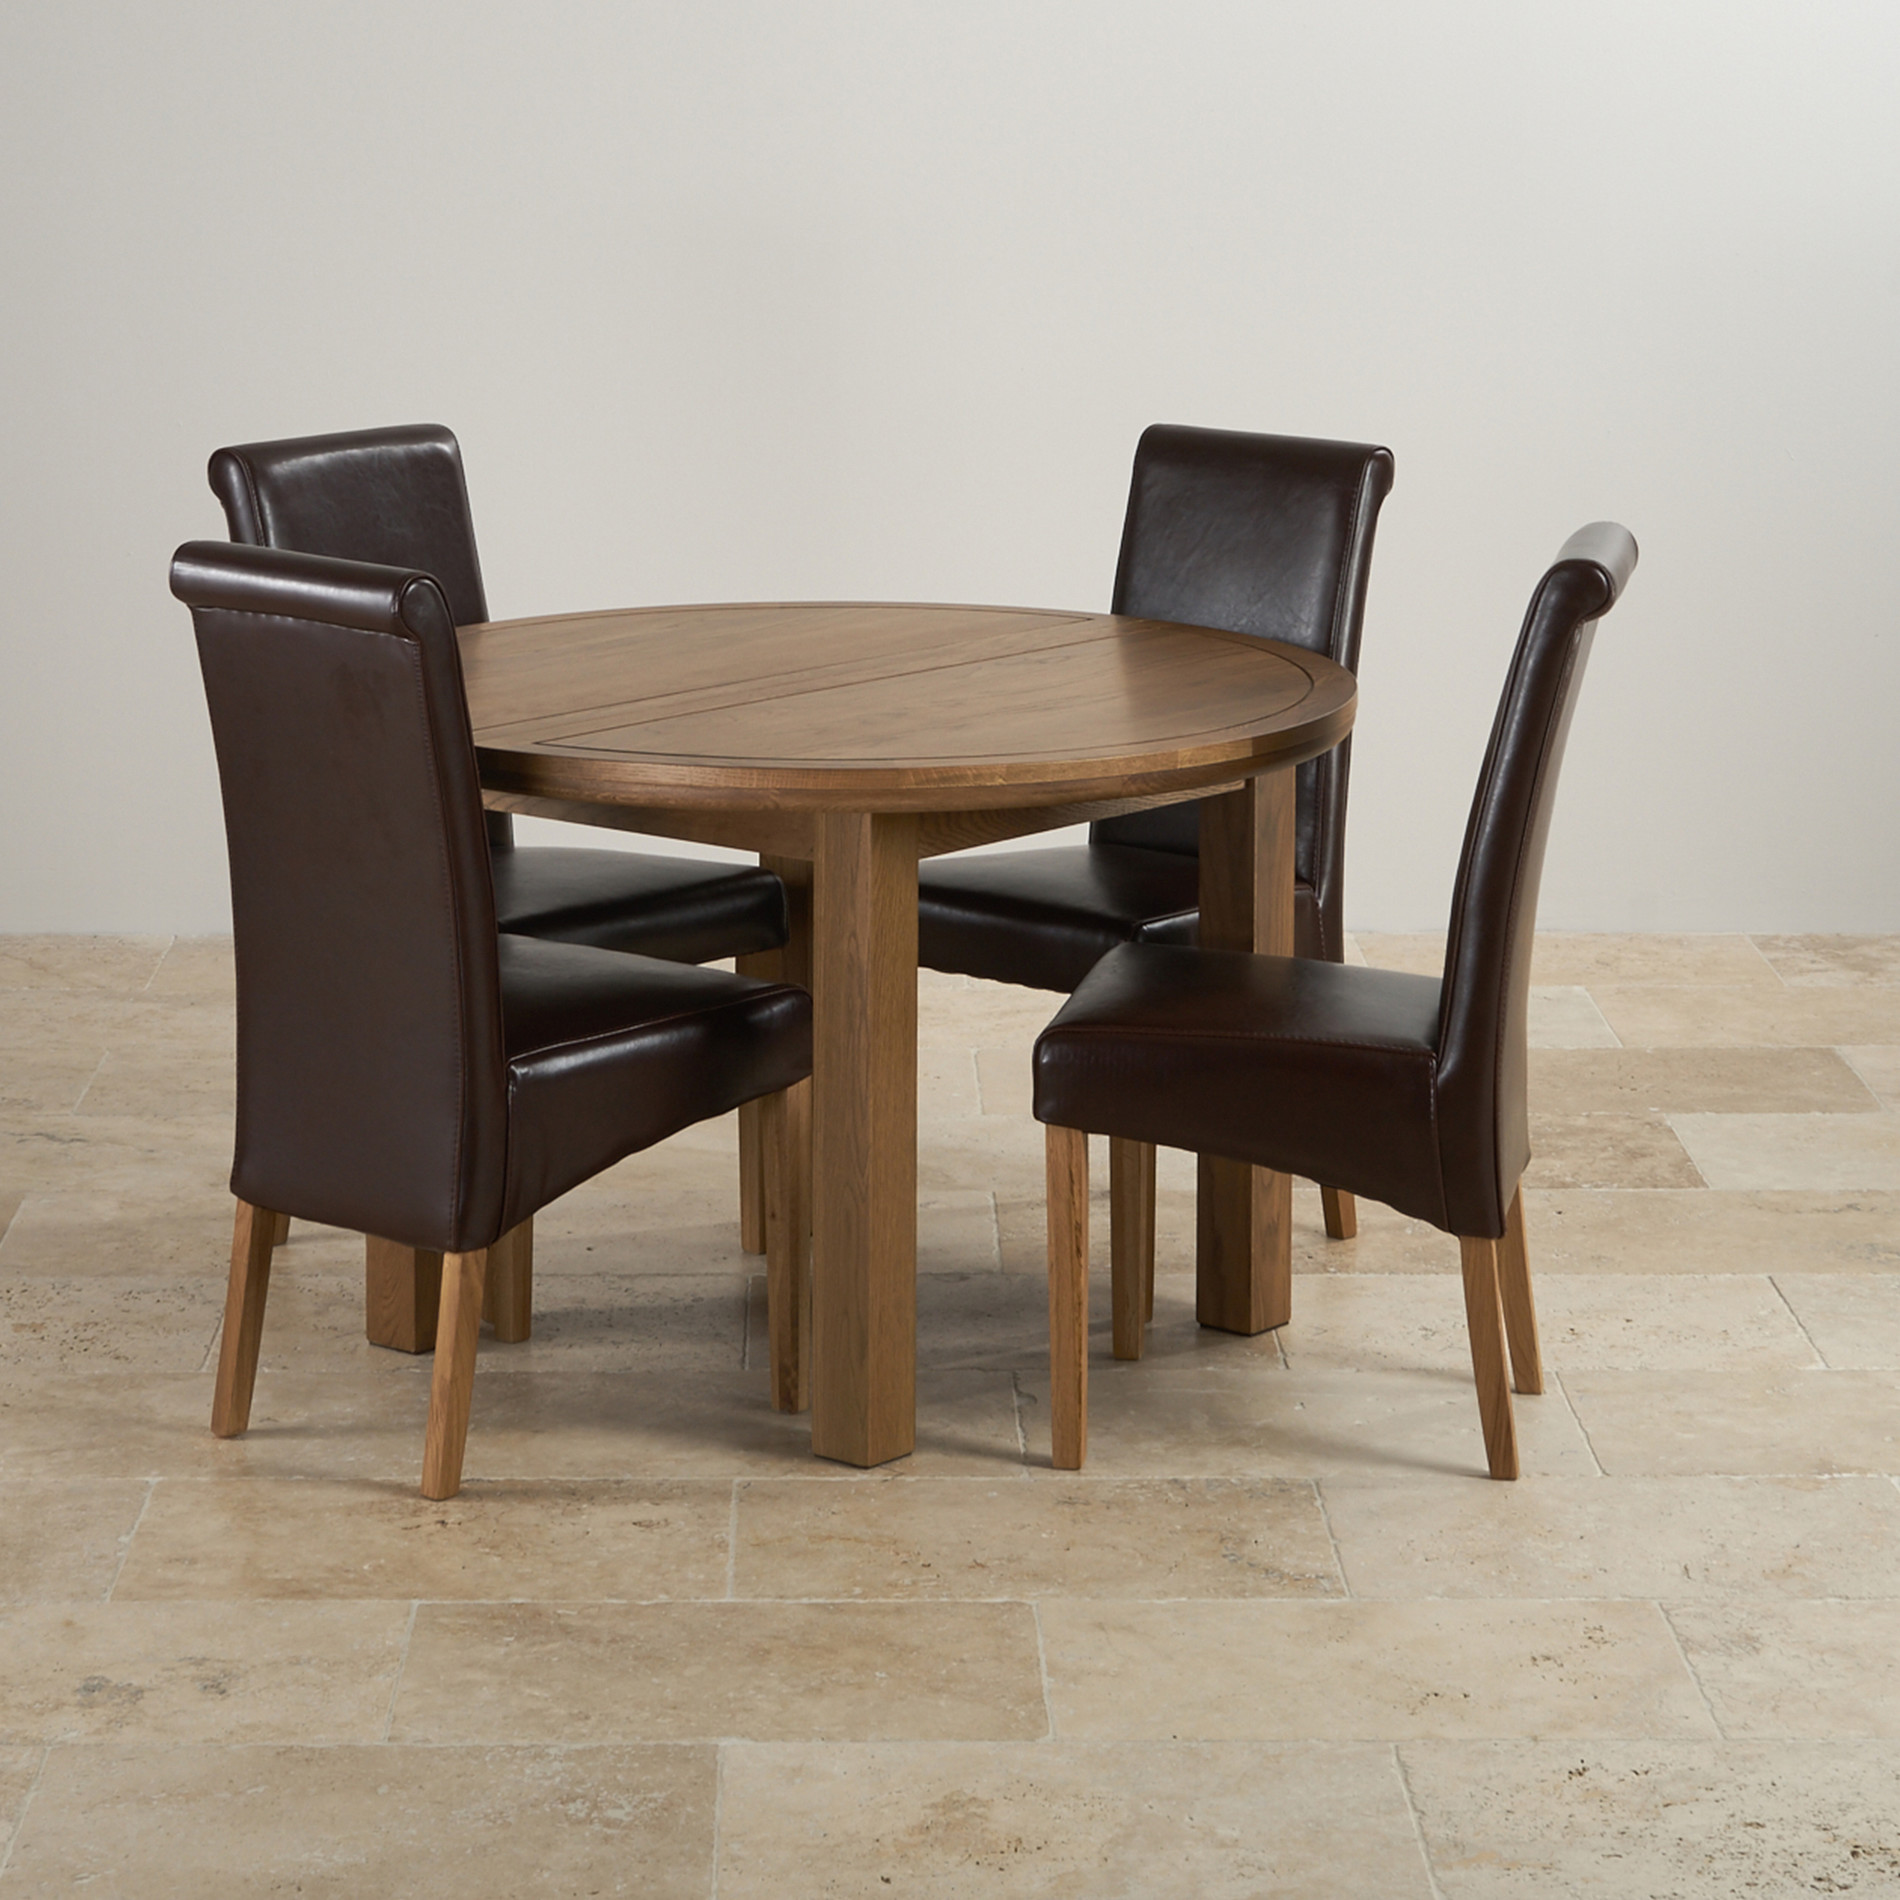 Round Breakfast Table Set: Knightsbridge Round Extending Dining Set: Dining Table + 4